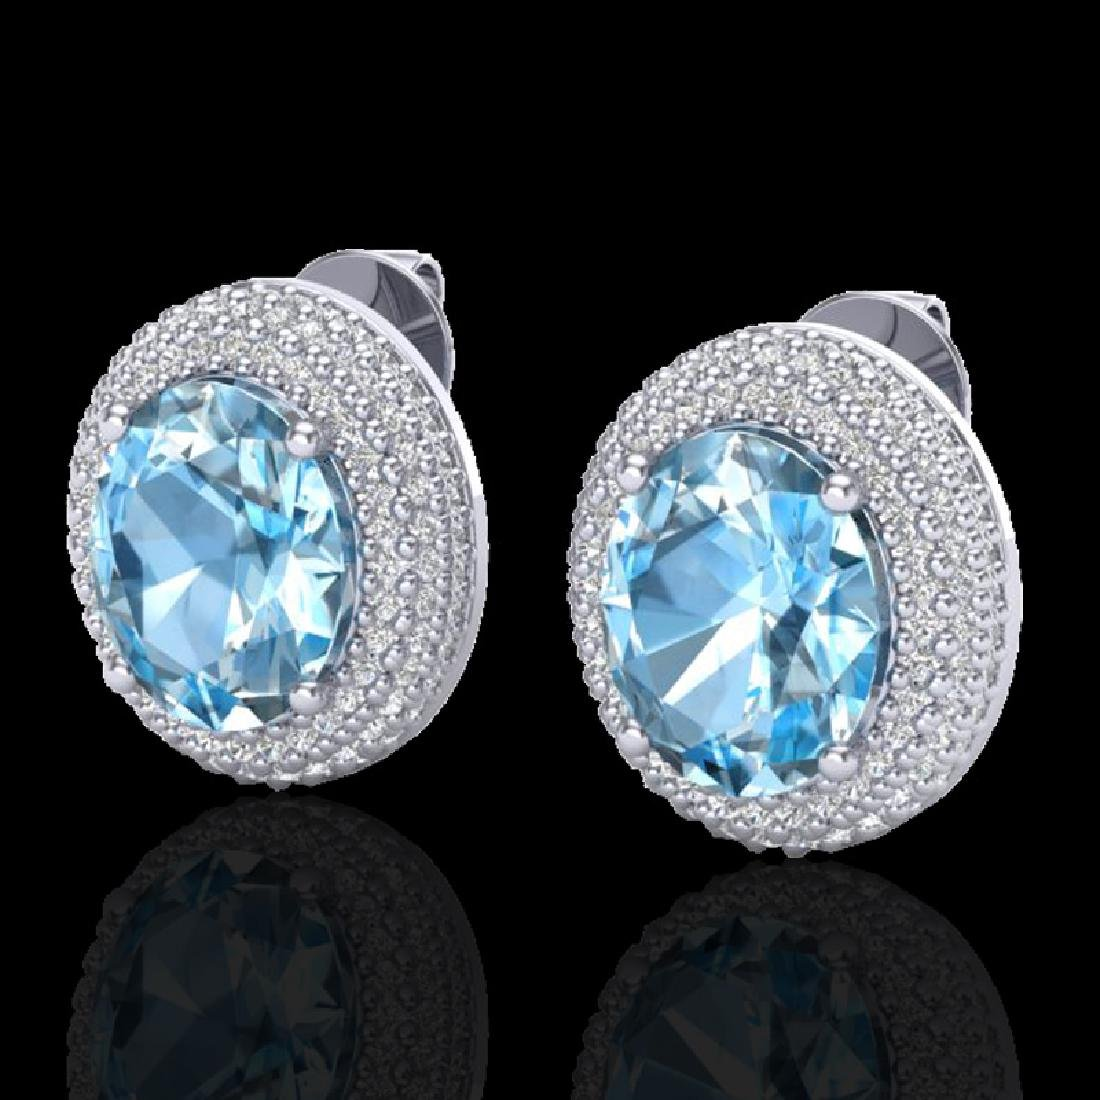 10 CTW Sky Blue Topaz & Micro Pave VS/SI Diamond